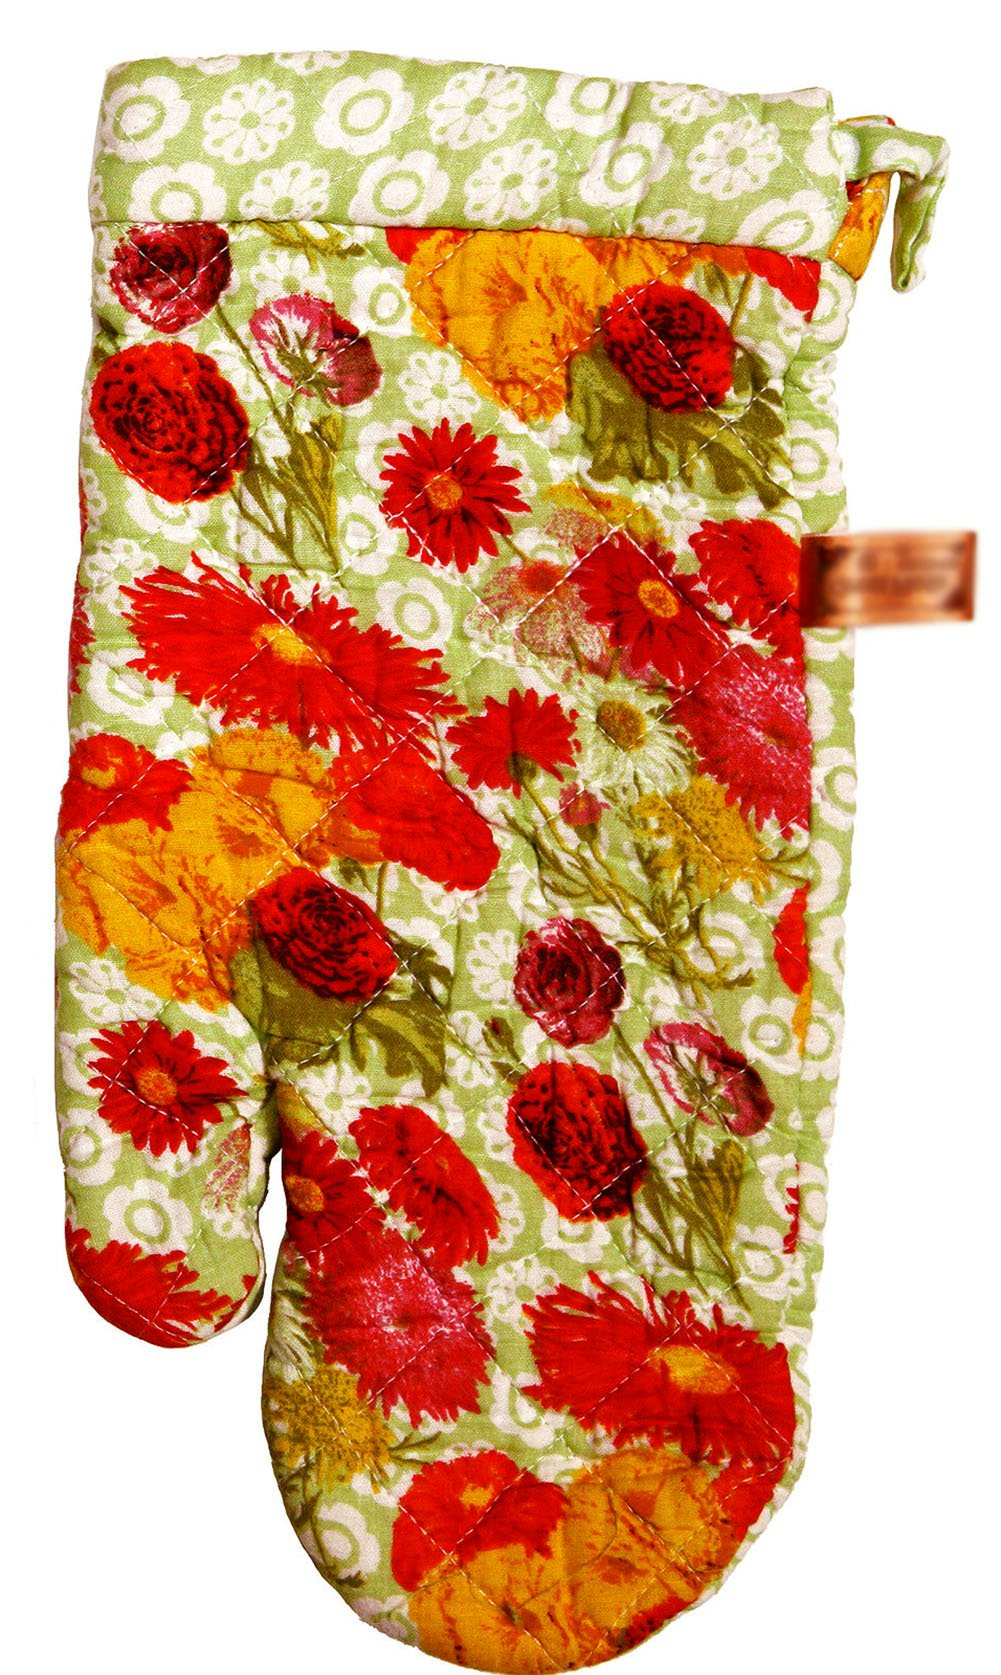 "Custom & Durable {14"" x 6.5"" Inch Each} 4 Set Pack of Mid Size ""Non-Slip"" Pot Holders Gloves Made of Cotton for Carrying Hot Dishes w/ Quilted Classic Daisy Floral Style {Green, Red, & Pink}"